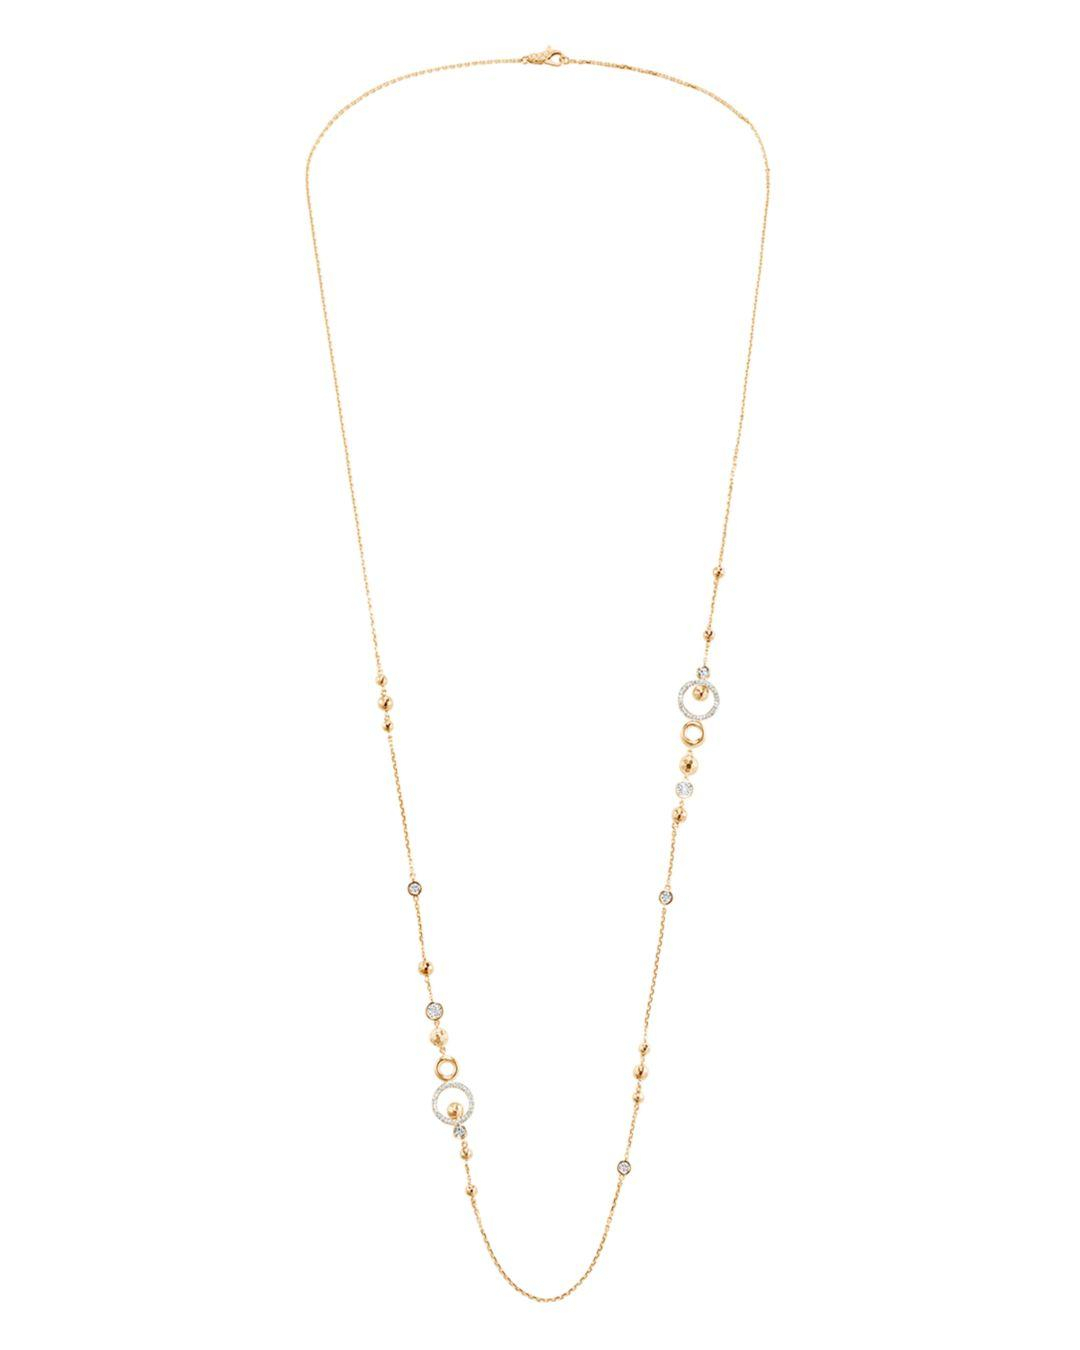 John Hardy 18K Yellow Gold Dot Pavé Diamond Sautoir Chain Pertaining To Most Up To Date Diamond Sautoir Necklaces In Yellow Gold (View 11 of 25)